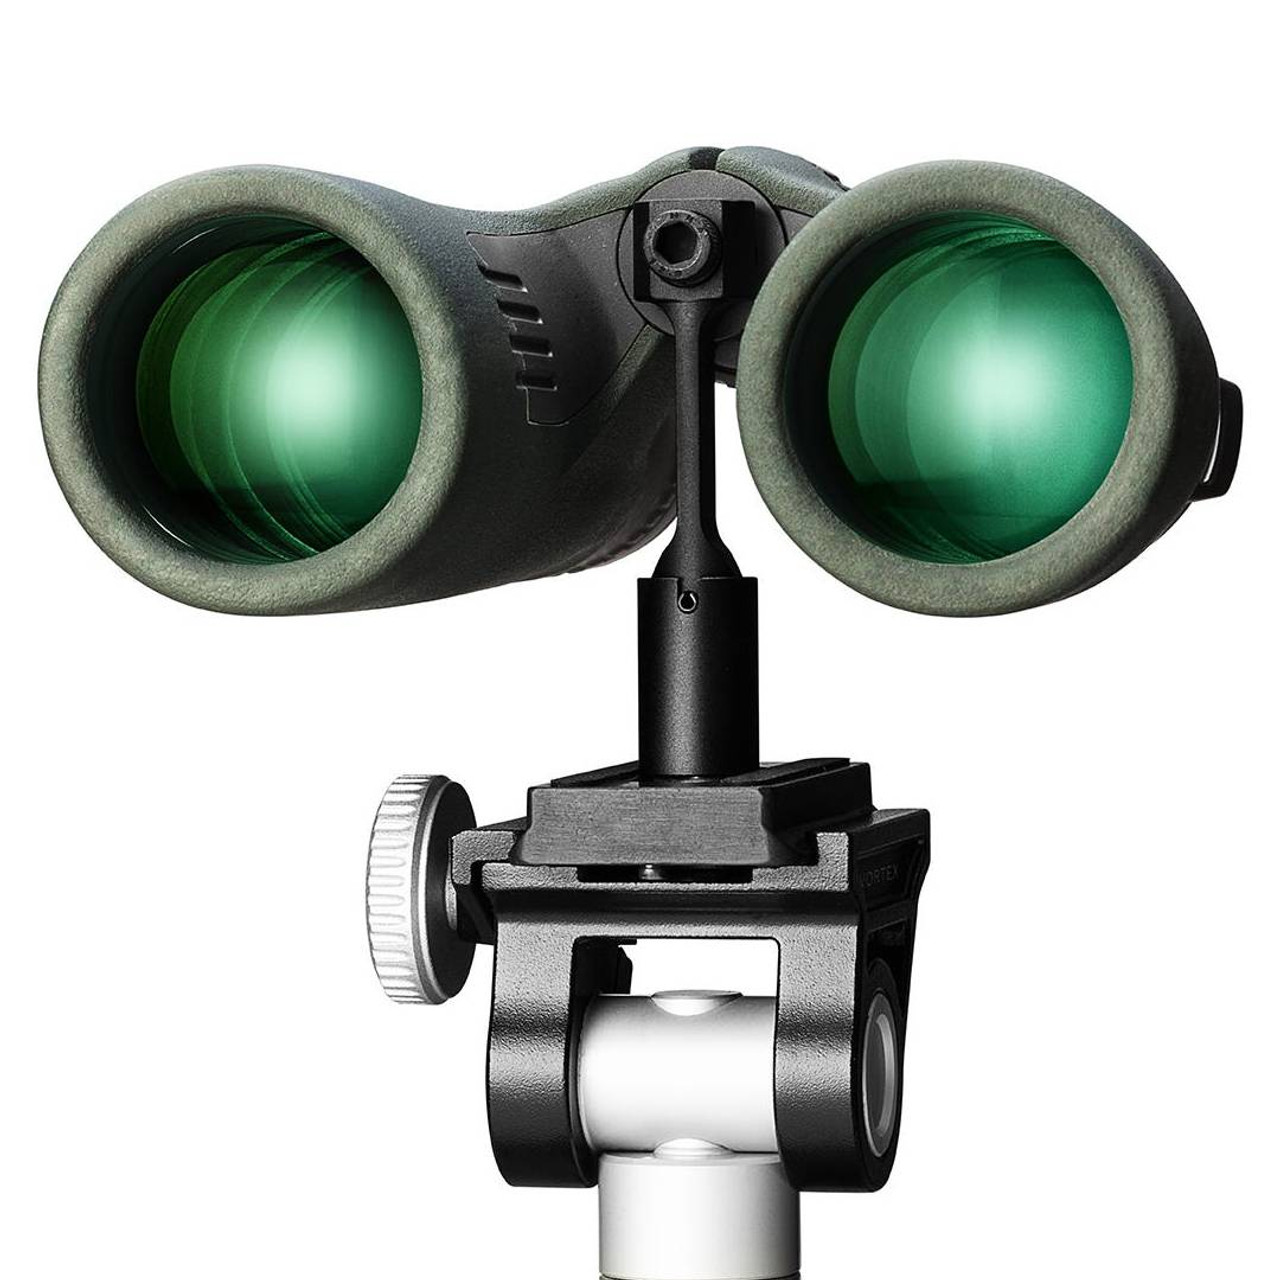 NOTE: Binocular /Tripod mount in image not included in price or listing.